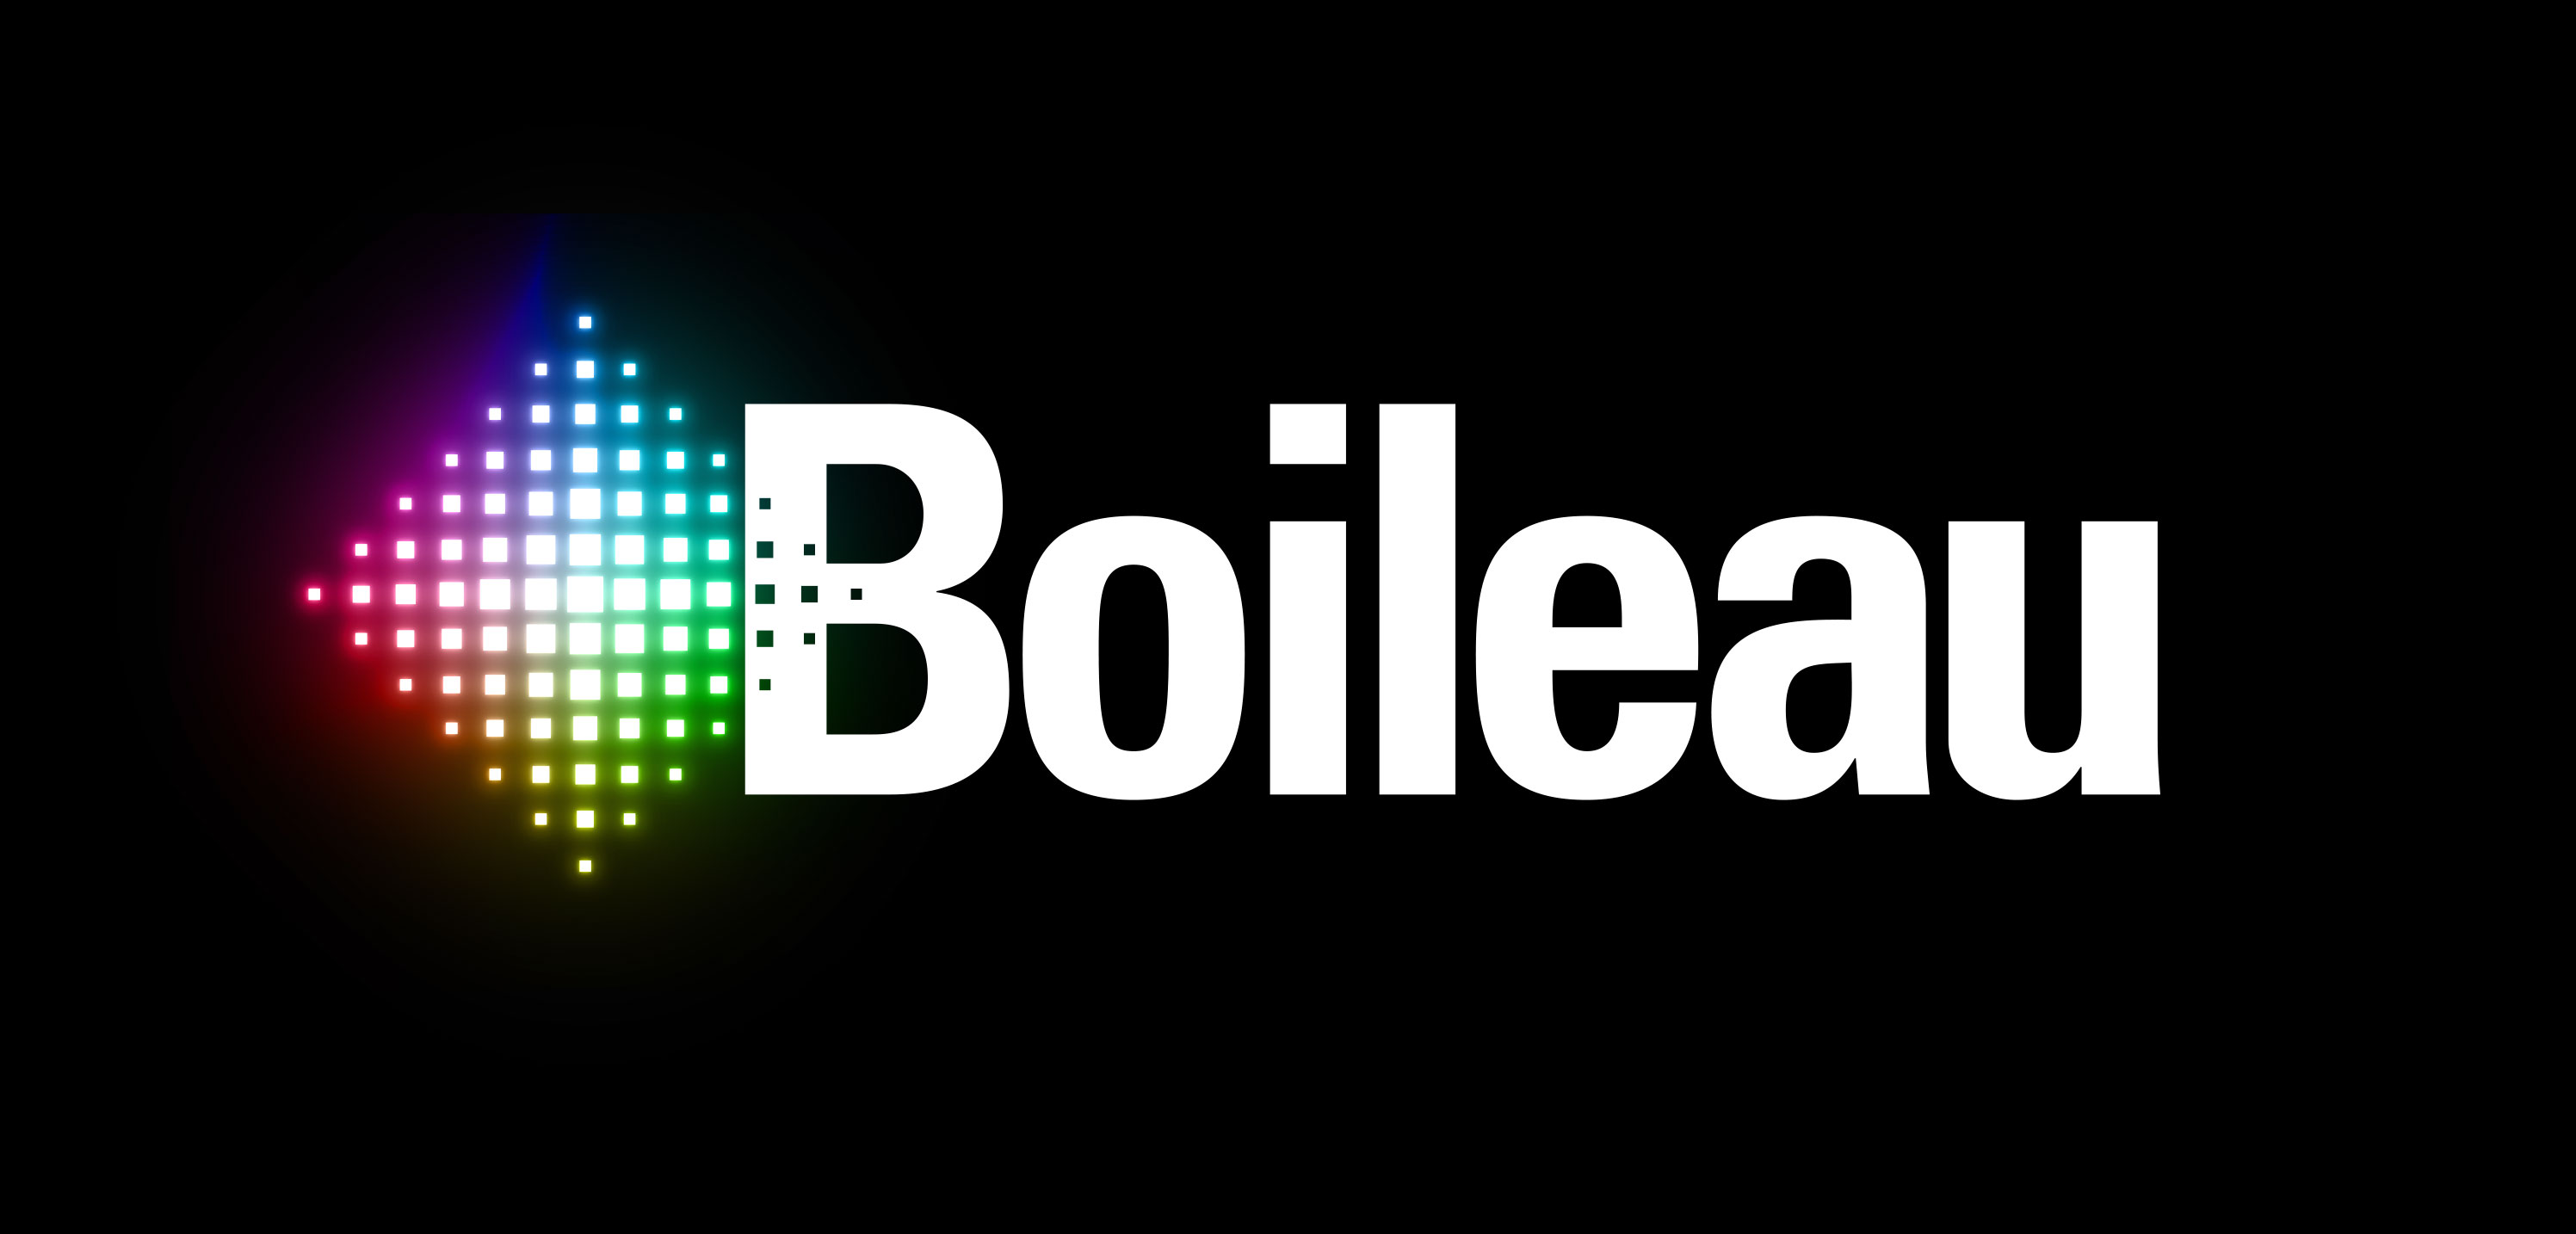 Founding partner Boileau